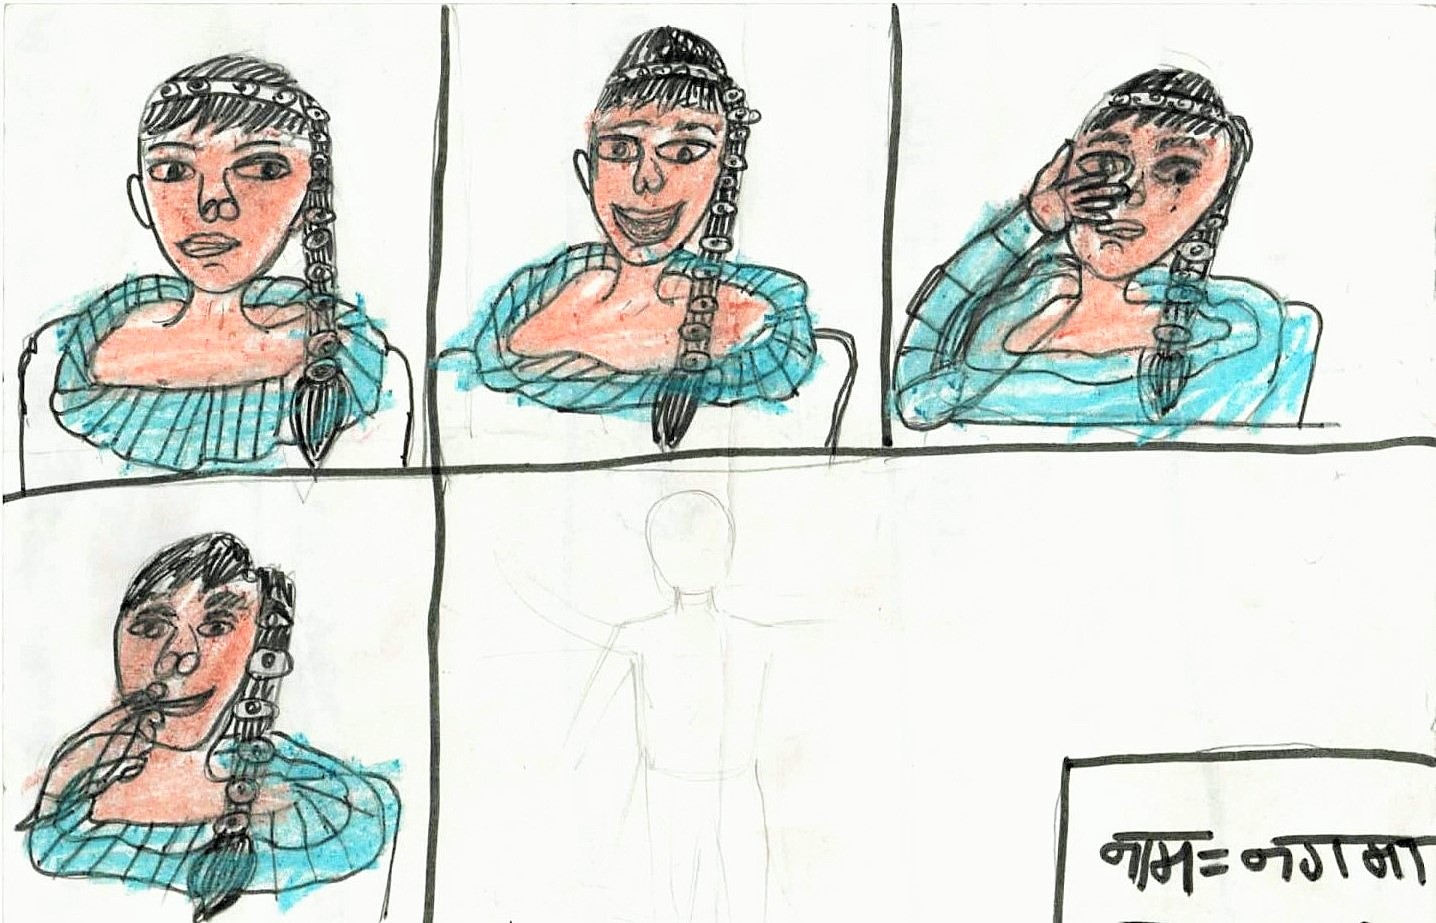 Dilshad_Garden_children_s_drawings_scanned-page-021.jpg